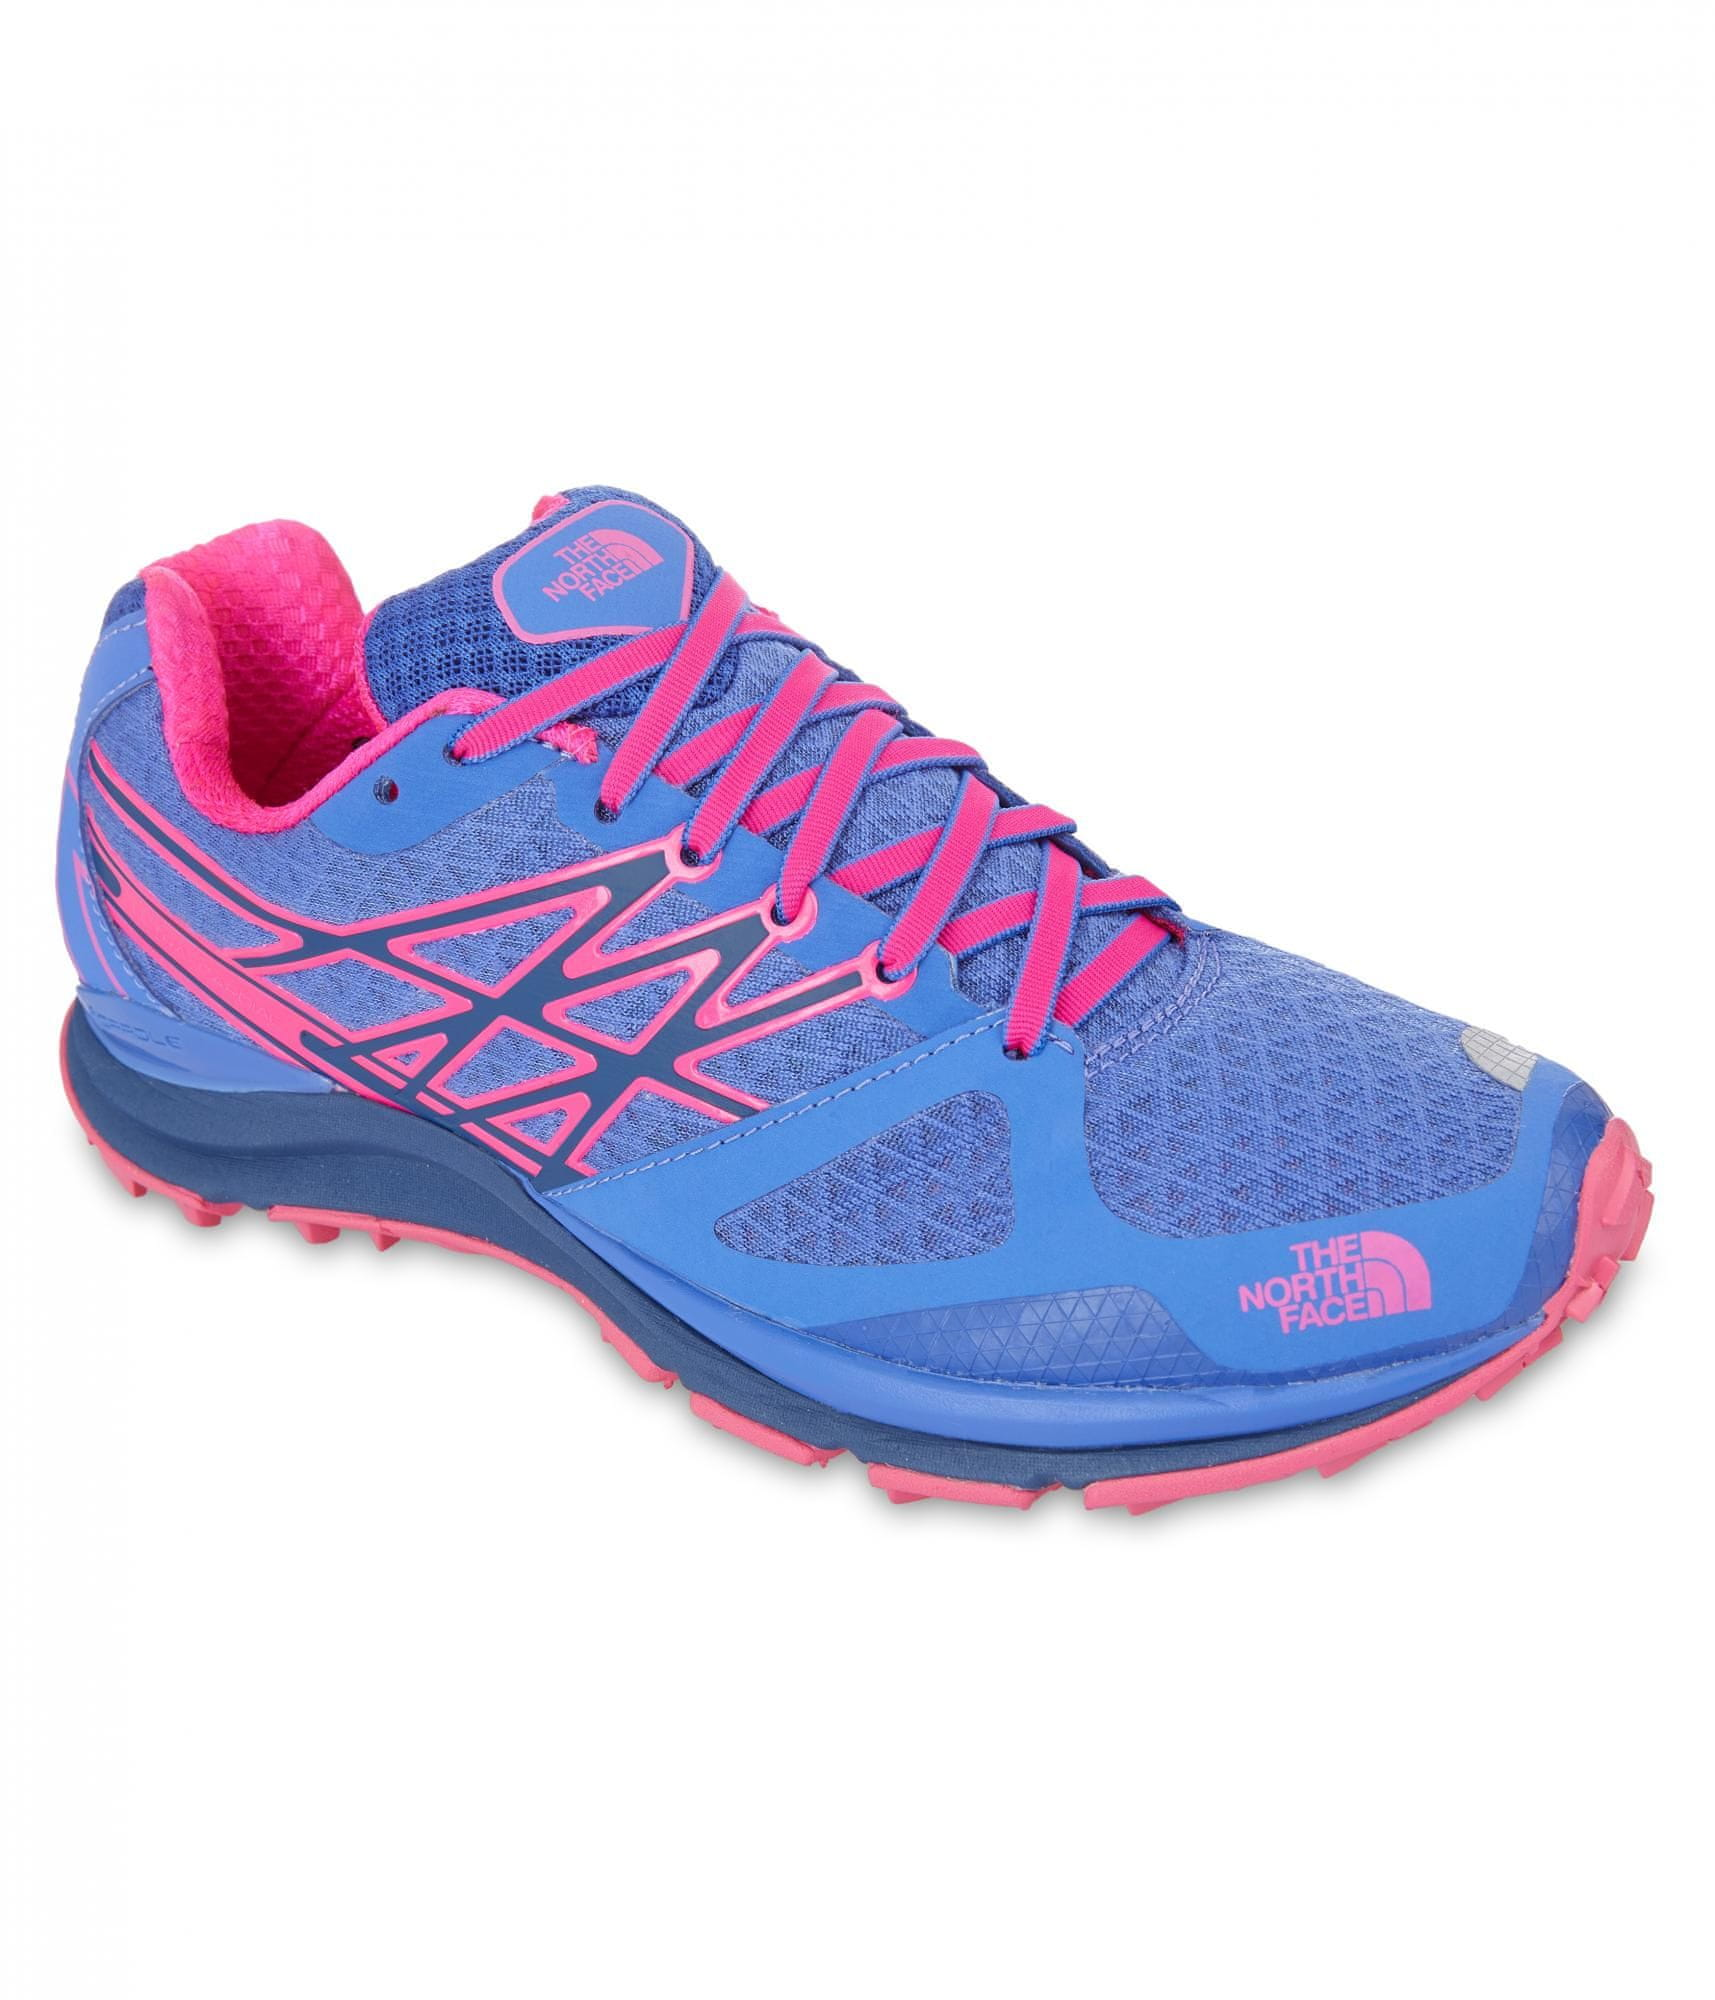 The North Face W Ultra Cardiac Amparo Blue/Pink 39